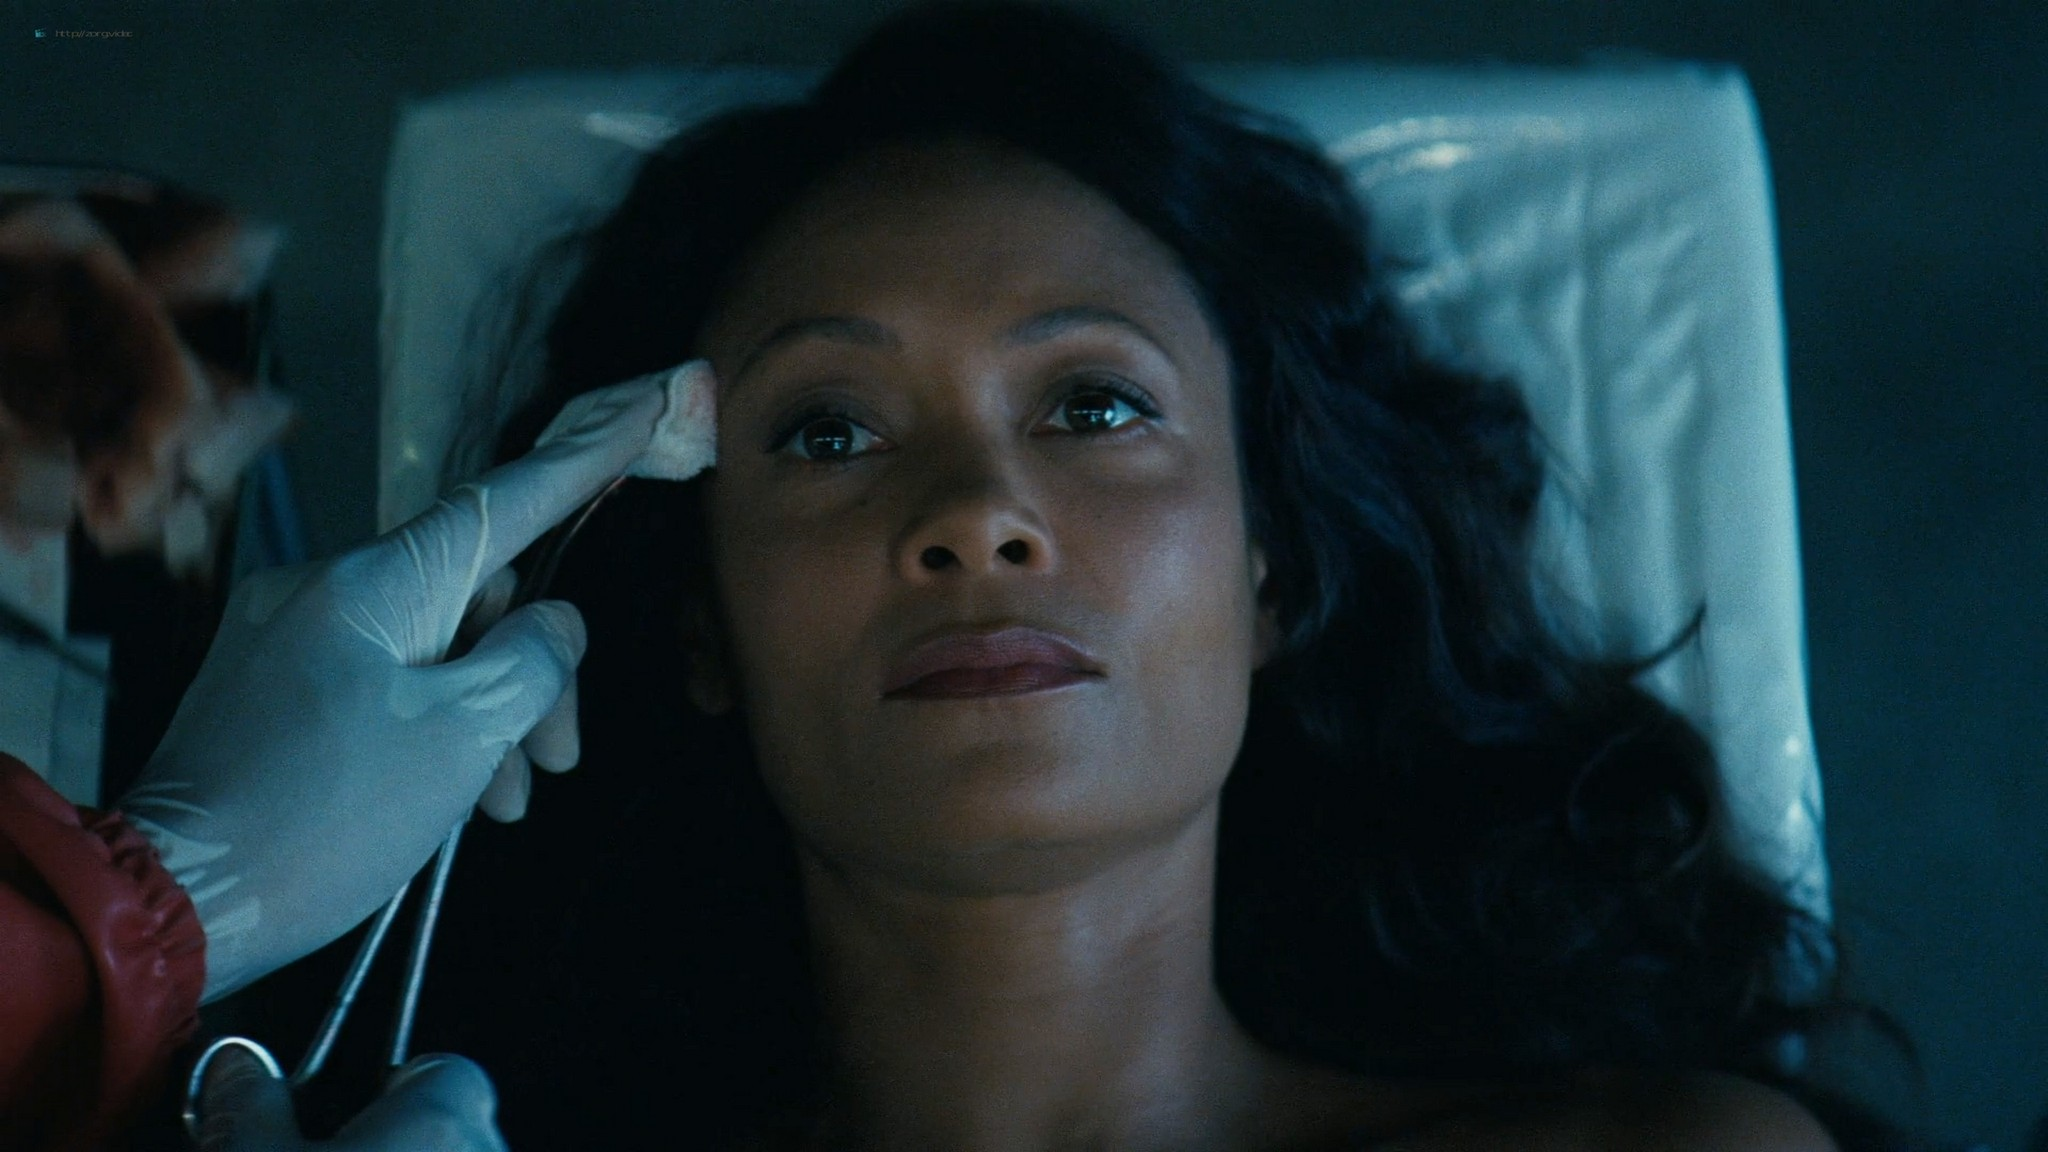 Thandie Newton nude others nude full frontal - Westworld (2020) s3e2 HD 1080p (13)